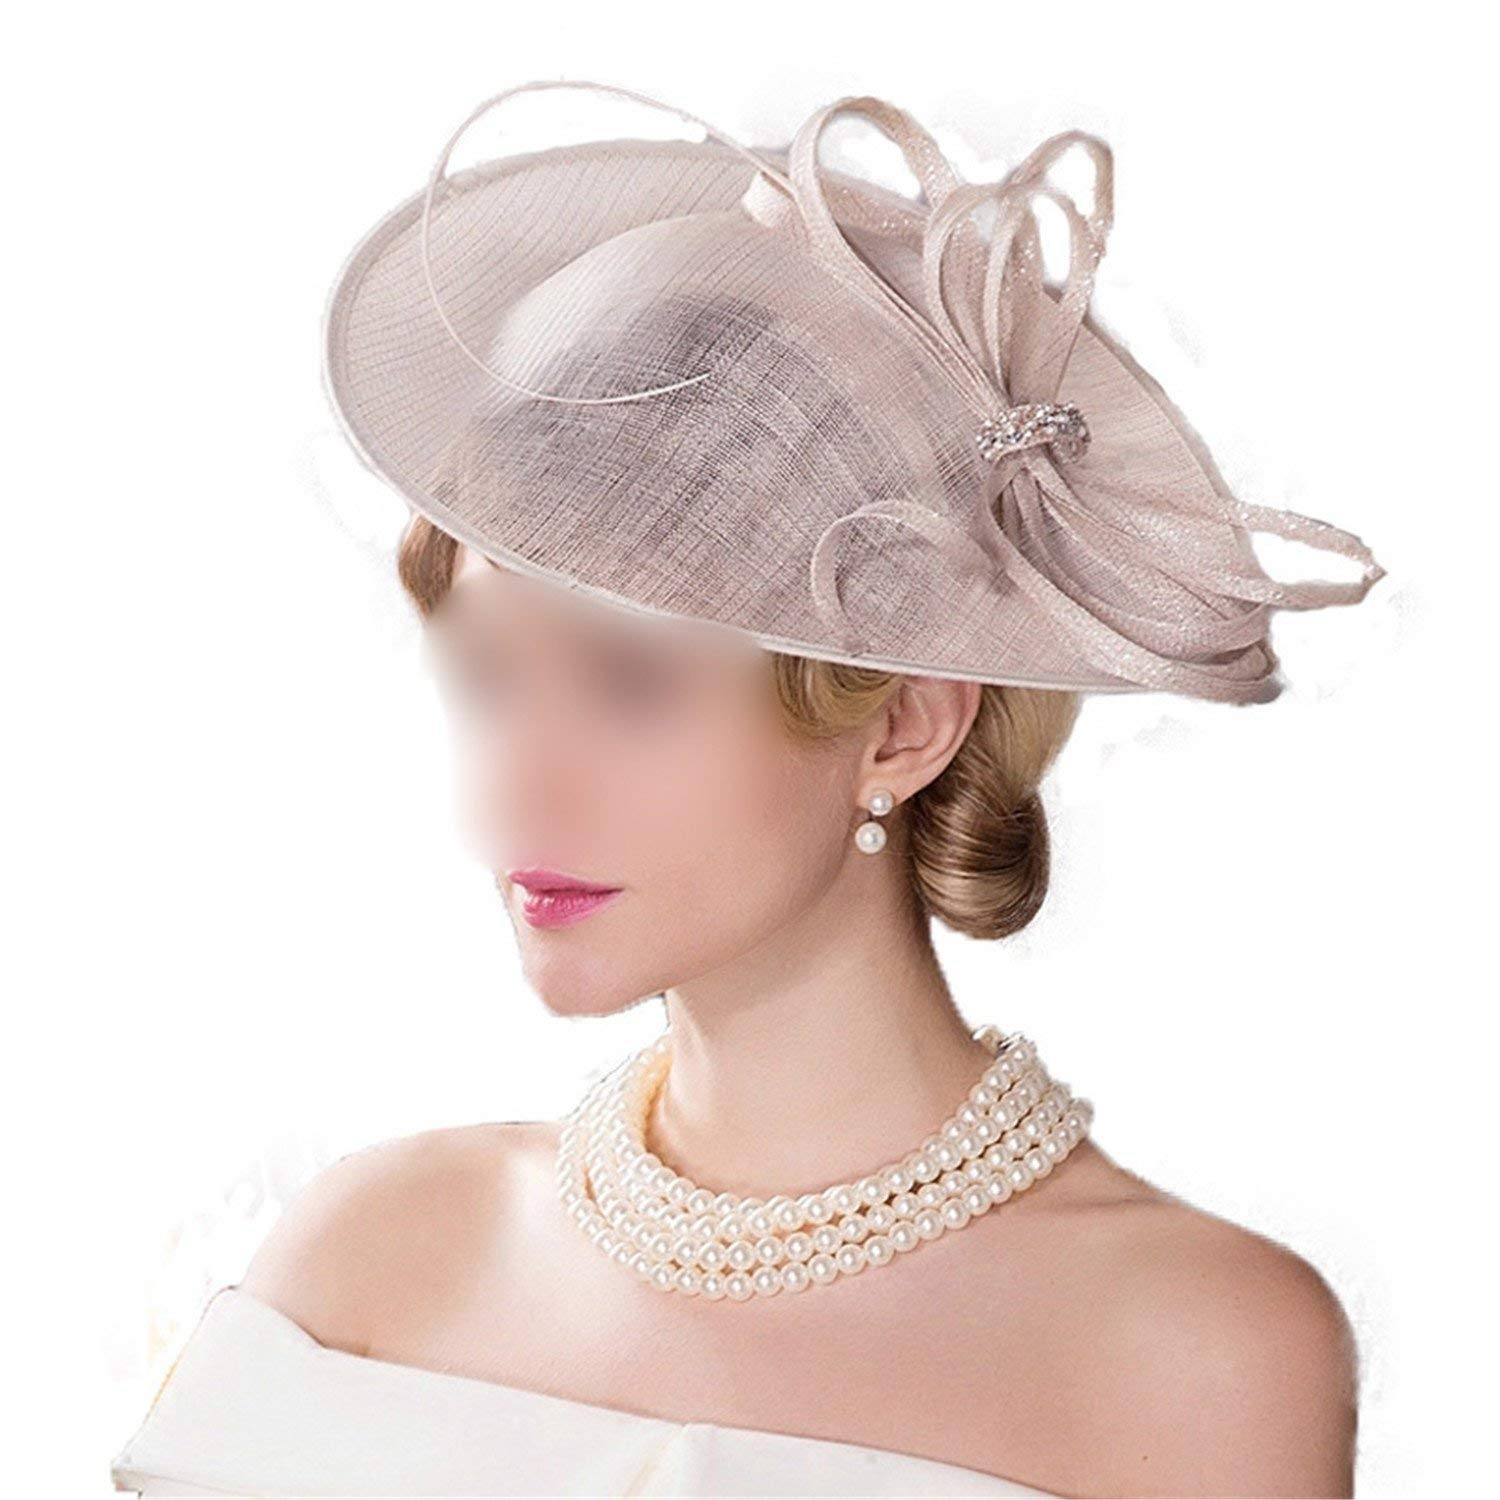 f56f73956447a Buy Fascinators for Women Beige Wedding Kentucky Derby Church Hats ...